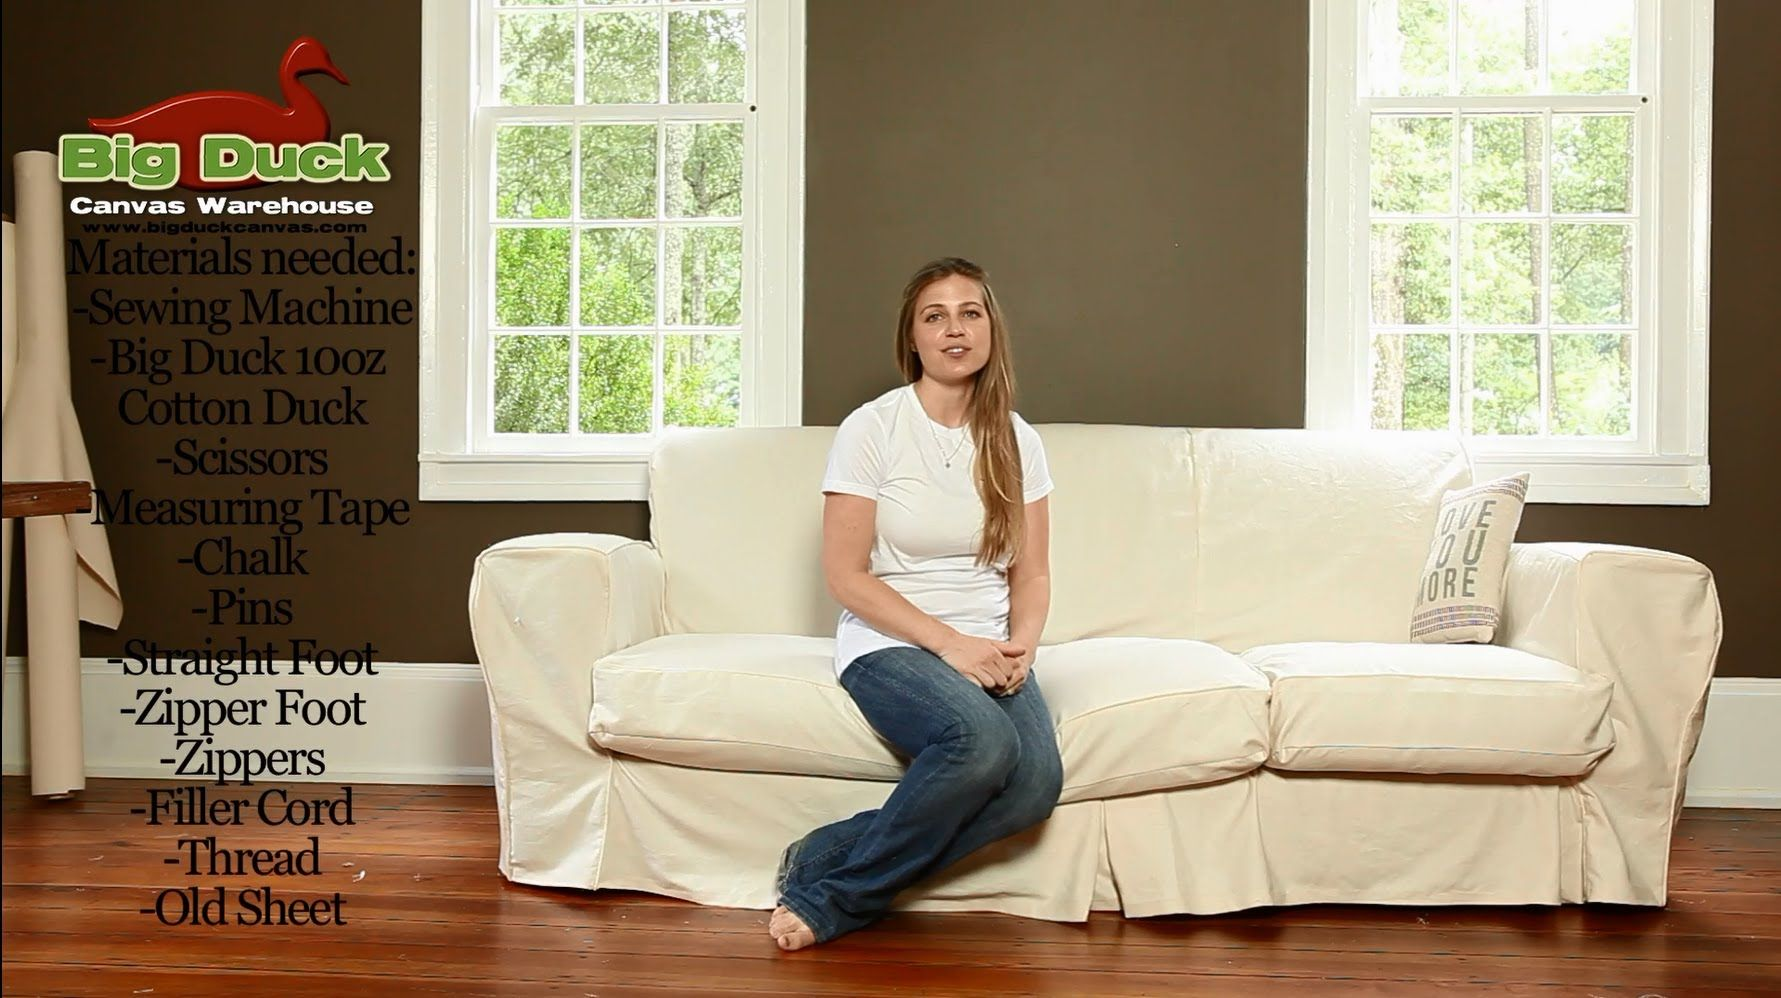 How To Make A Slipcover Big Duck Canvas Great Video